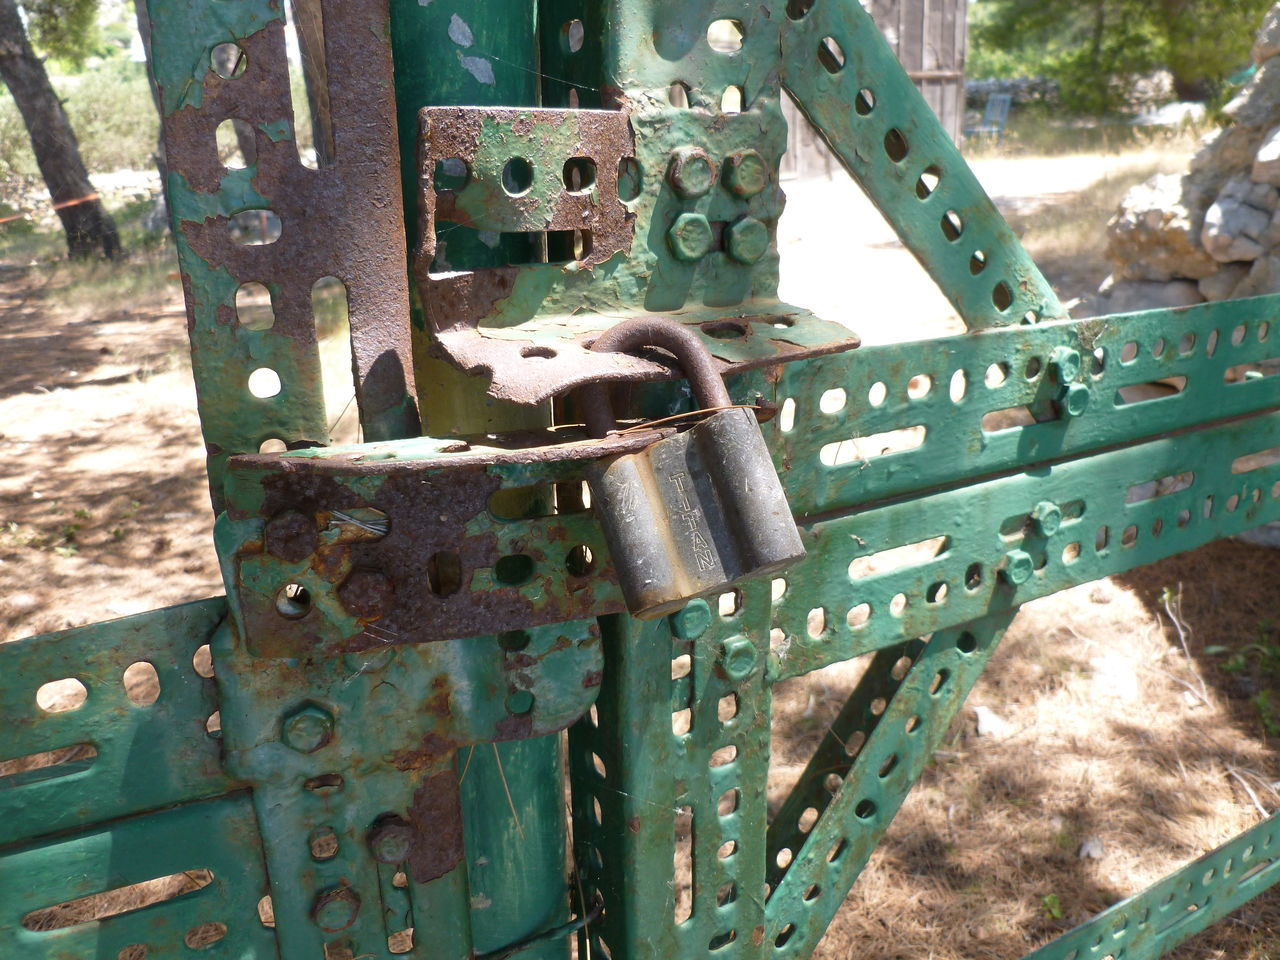 padlocked Angle Iron Barred Barred Entry Gate Gates Green Green Gate Keep Out Keep Out Private Metal Metal Gate No Entry No Entry Padlock Padlocked Padlocked Gate Padlocks Perforated Perforated Metal Pattern Perforated Plate Rust Rusty Rusty Gate Rusty Gates Security